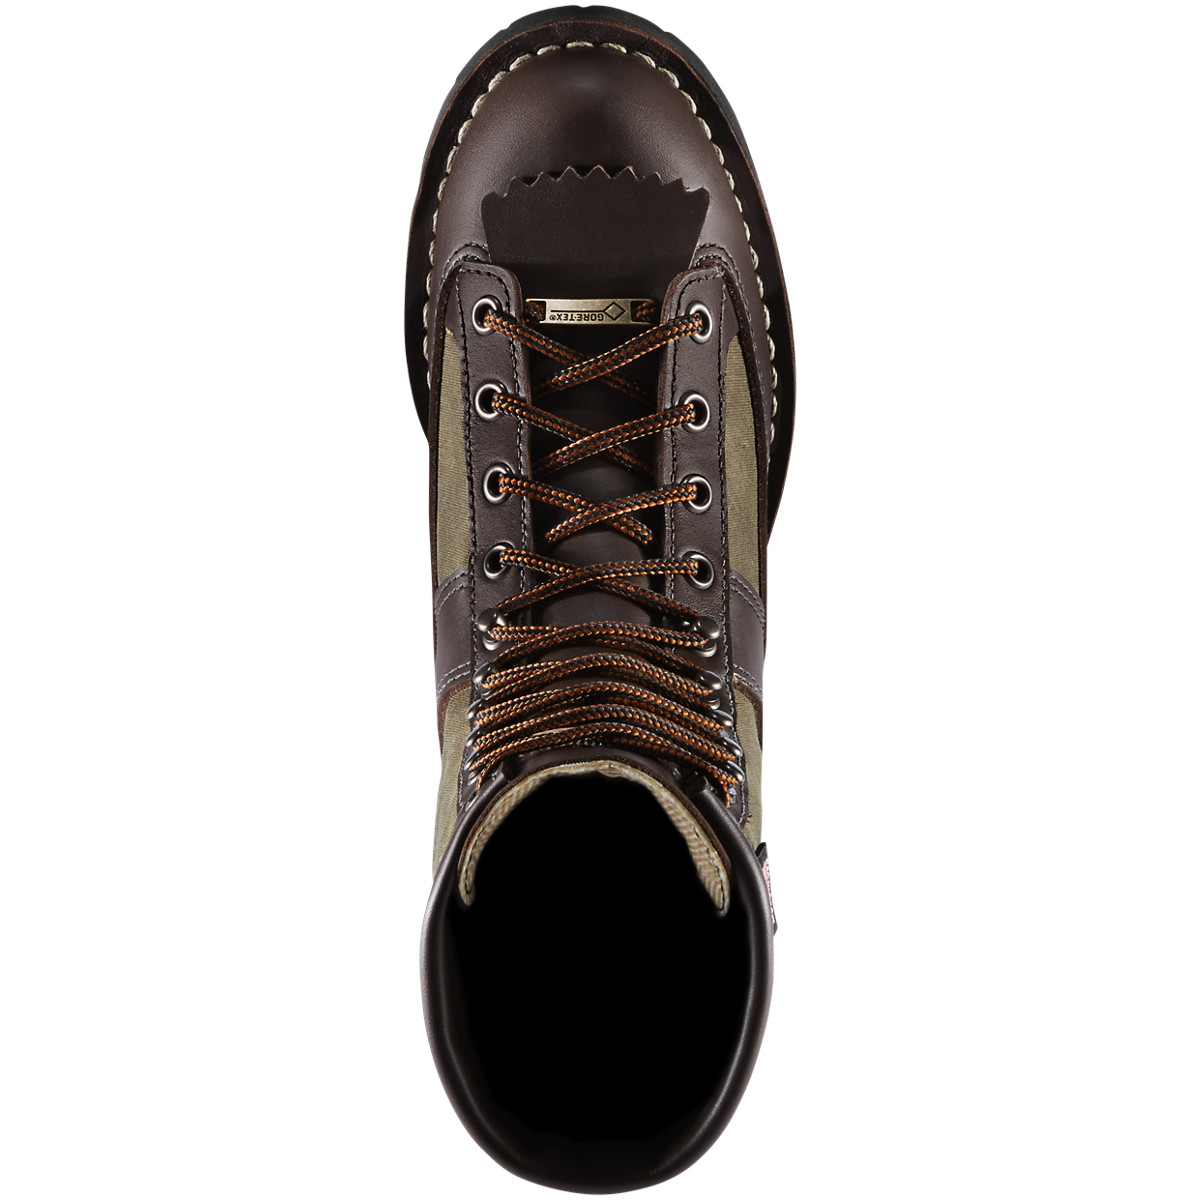 Women's Grouse x Filson